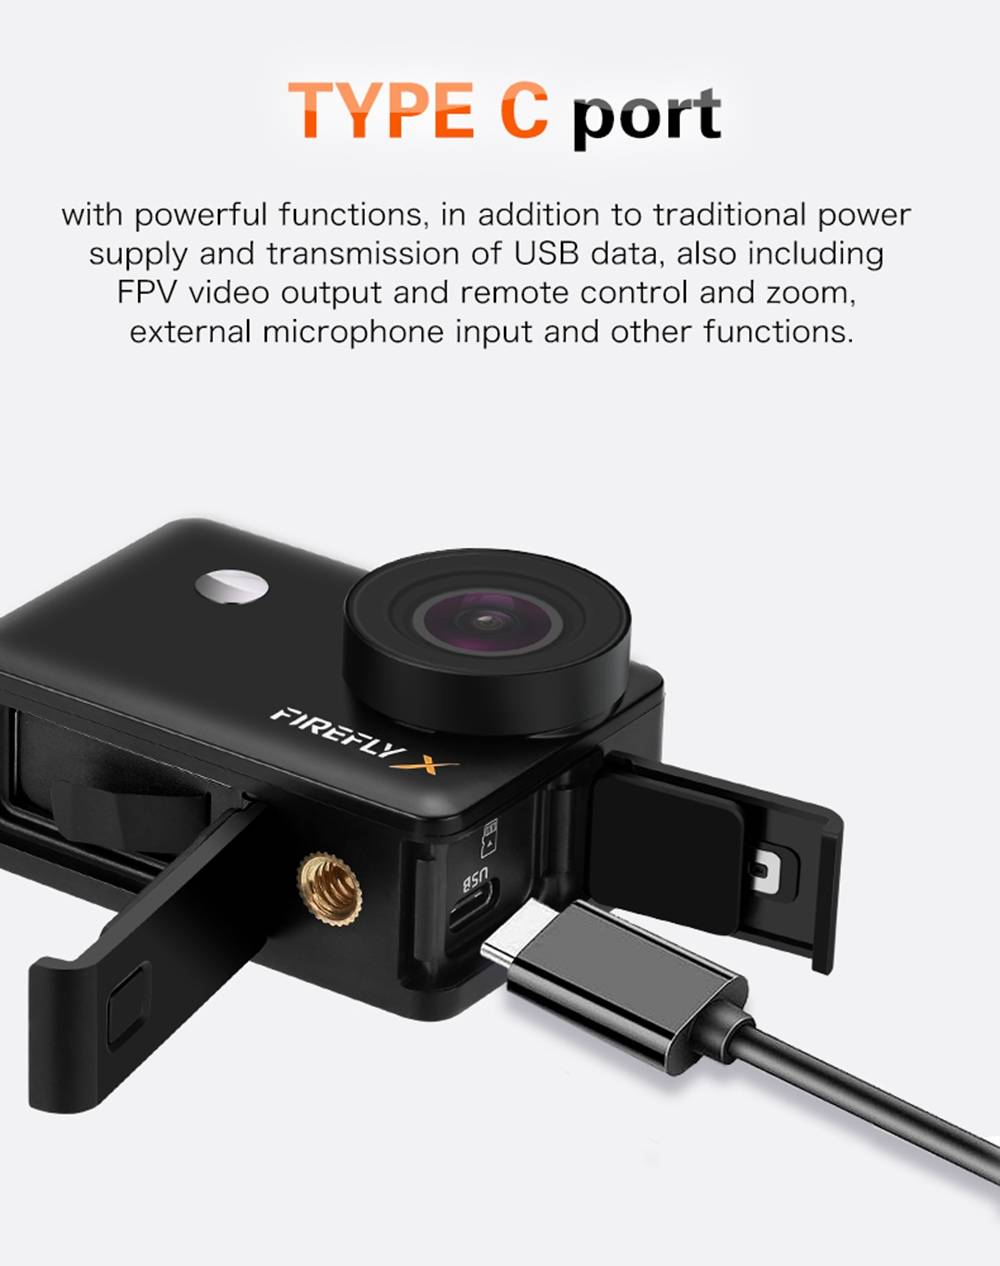 Hawkeye Firefly X 4K/60fps 2.35 Inch IPS Touch Screen Ambarella H22 7X Digital Zoom WIFI FPV Action Sport Camera - Black